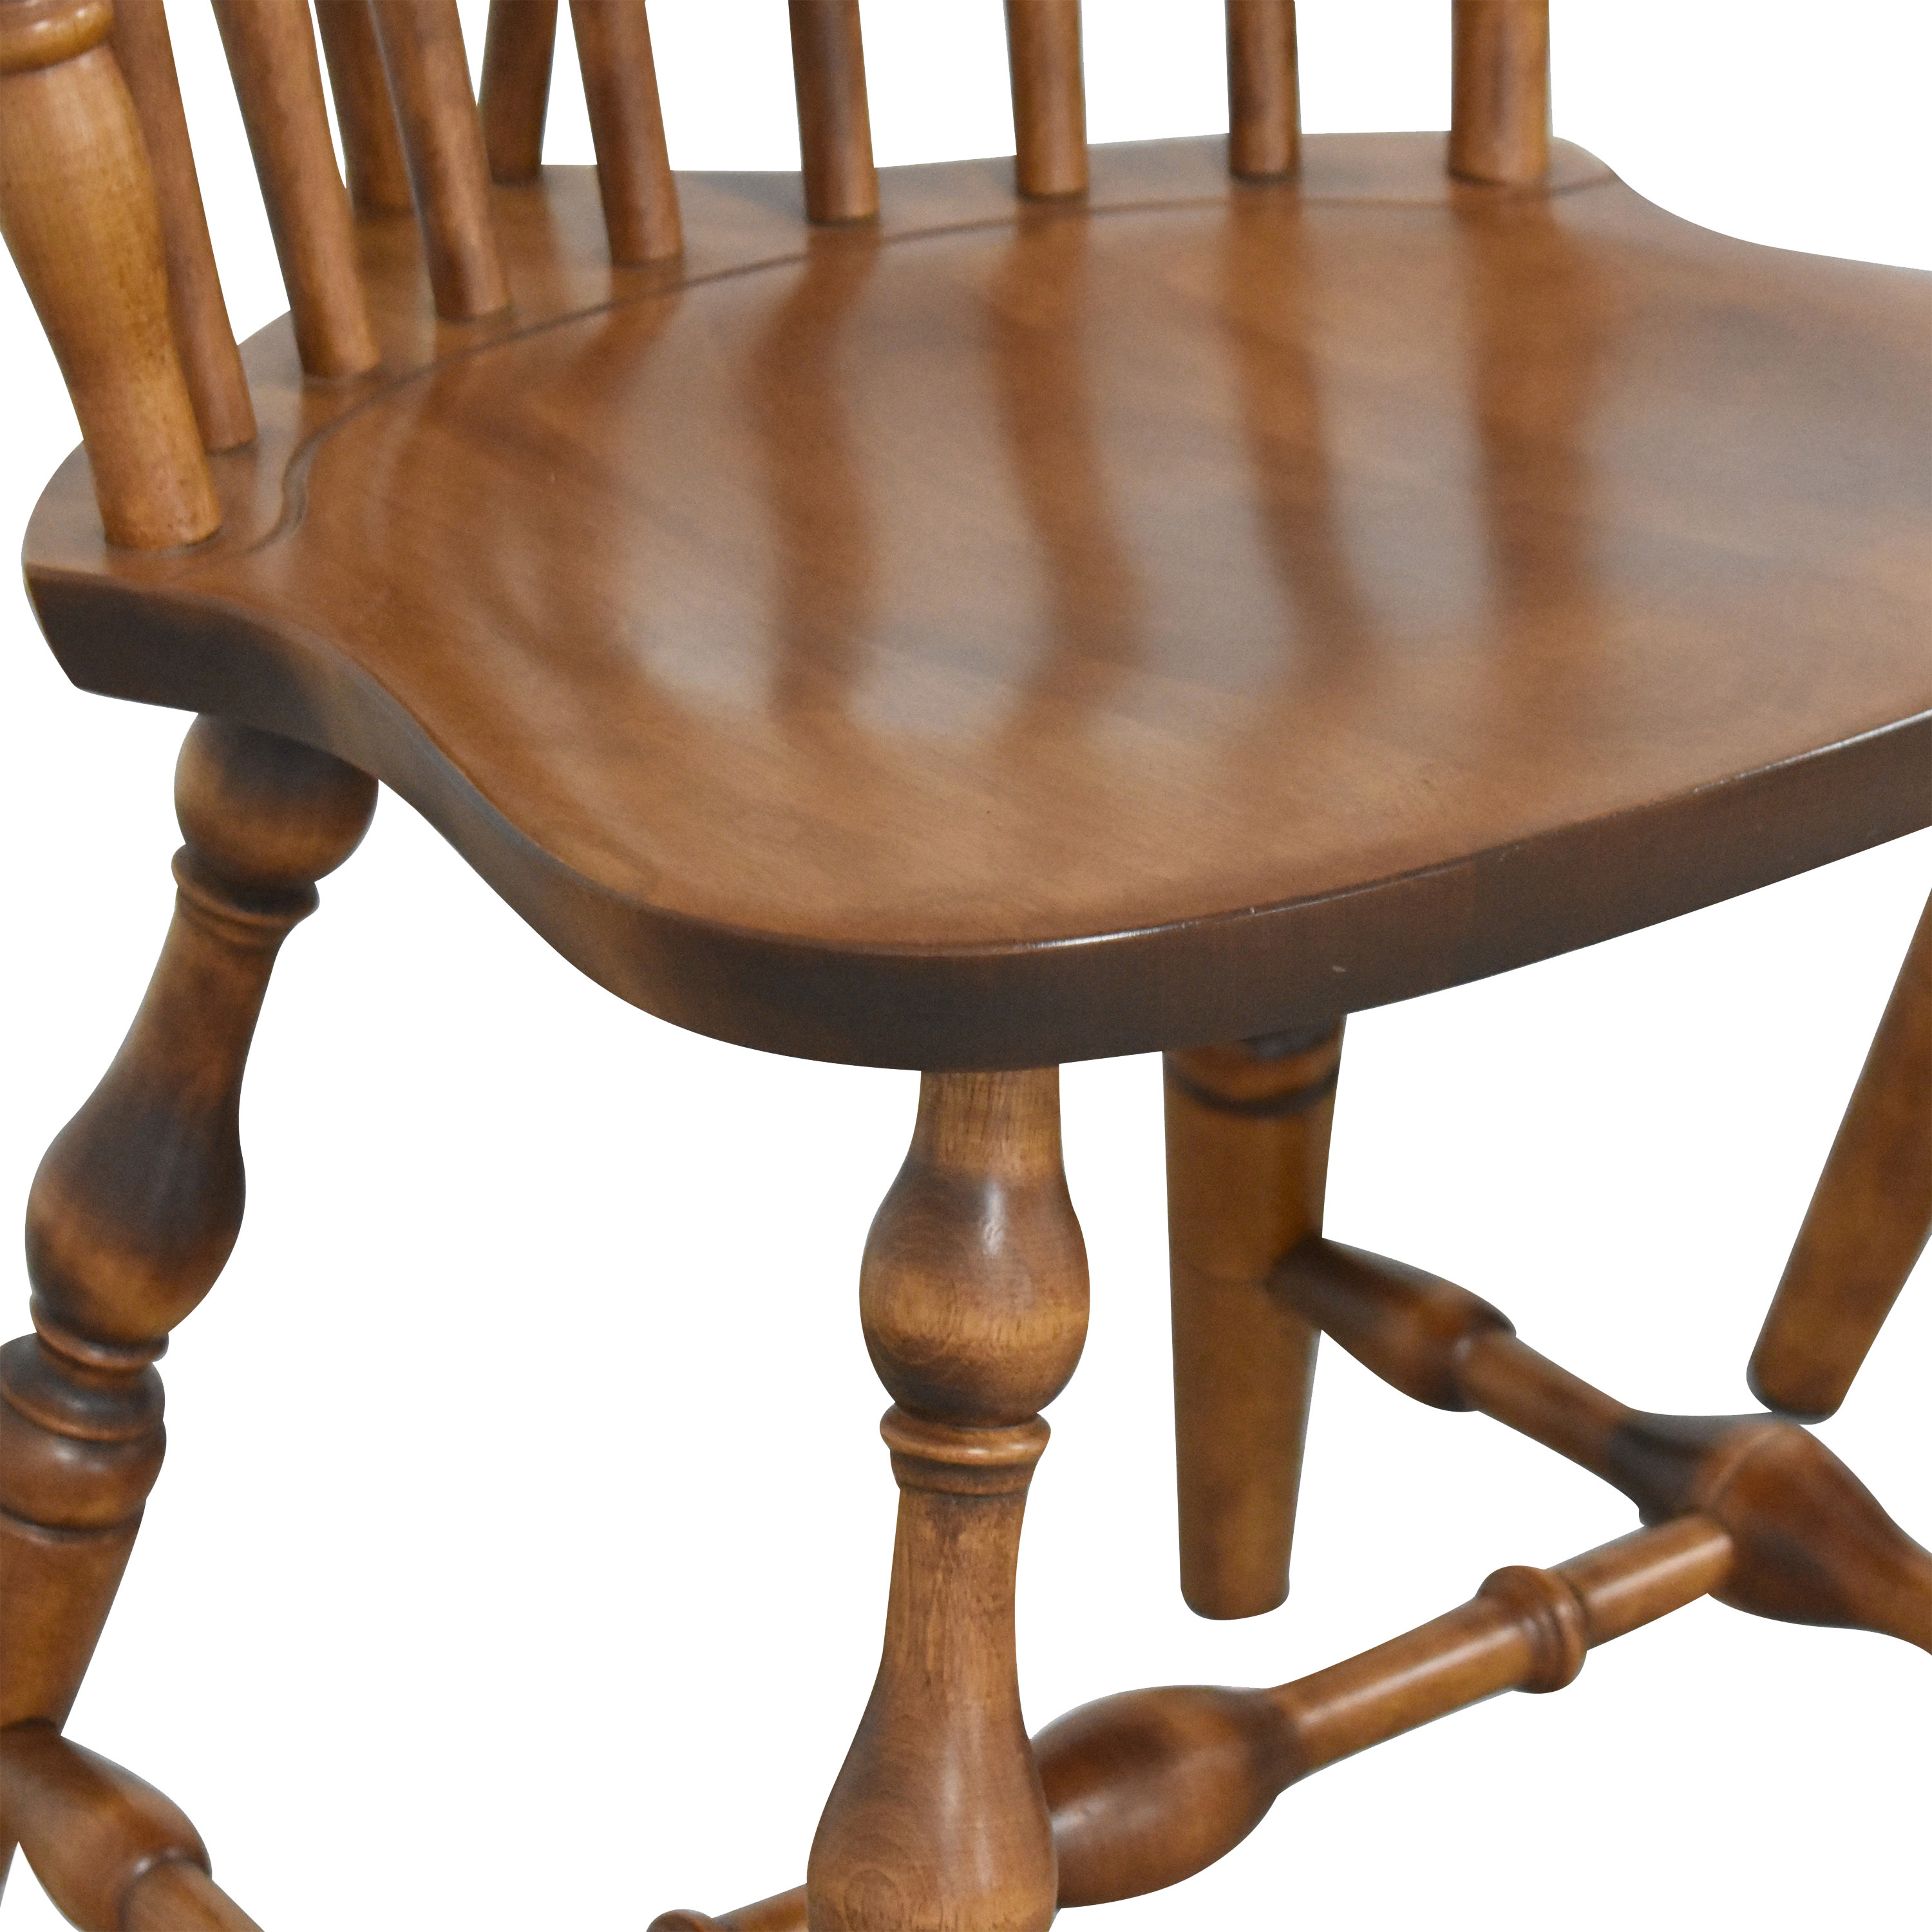 S. Bent & Bros S. Bent & Bros Brace Back Windsor Dining Side Chairs price